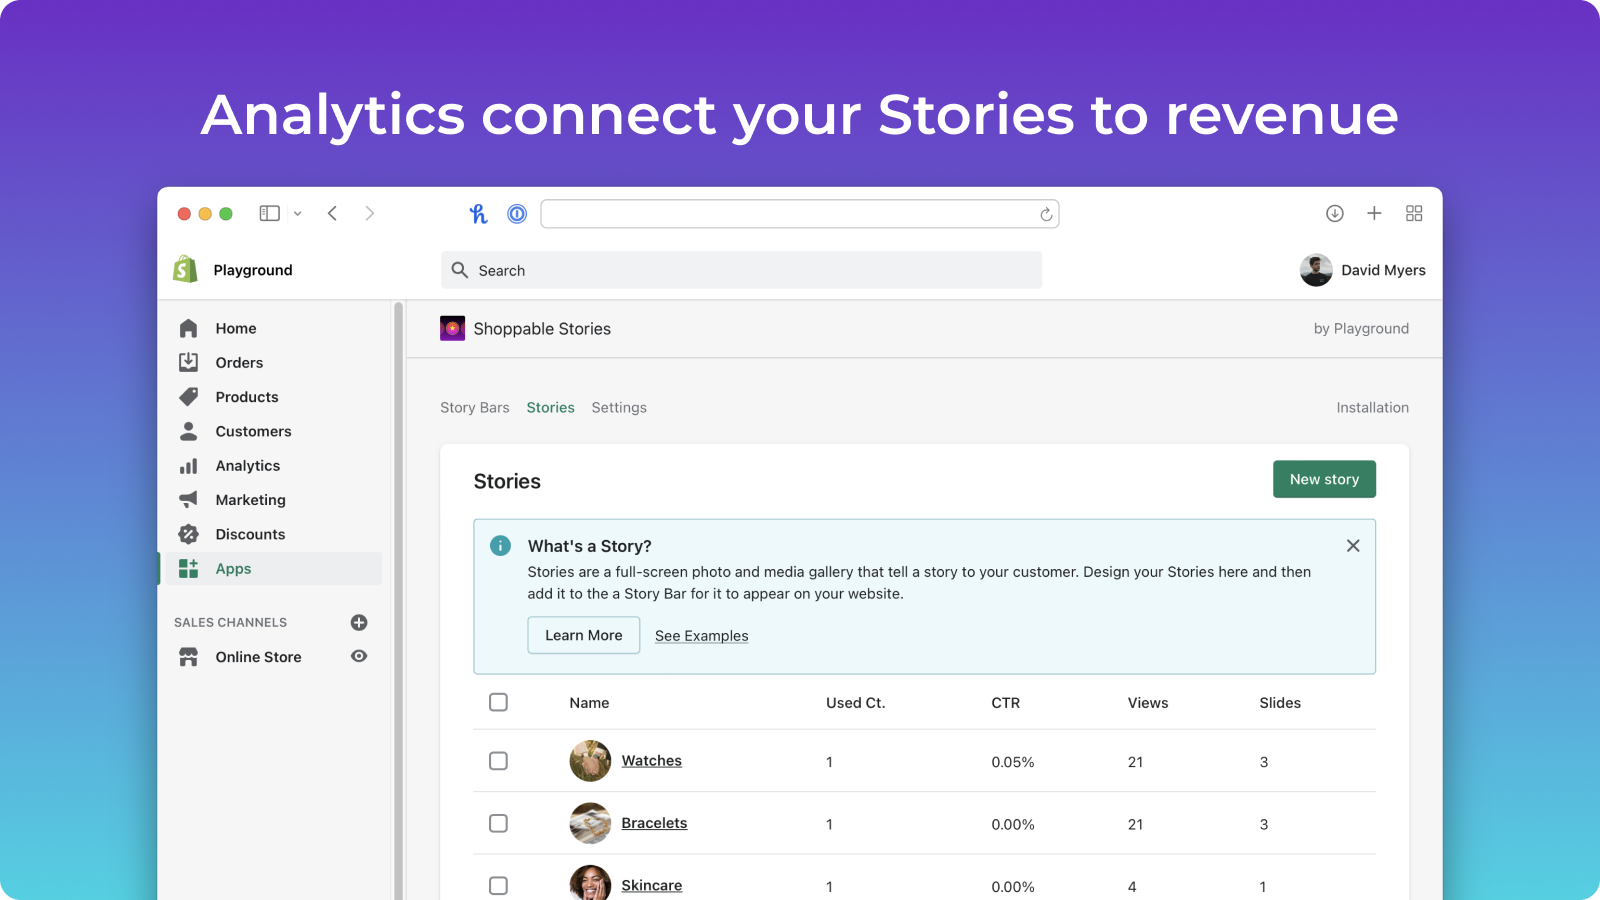 Analytics connect your Stories to revenue